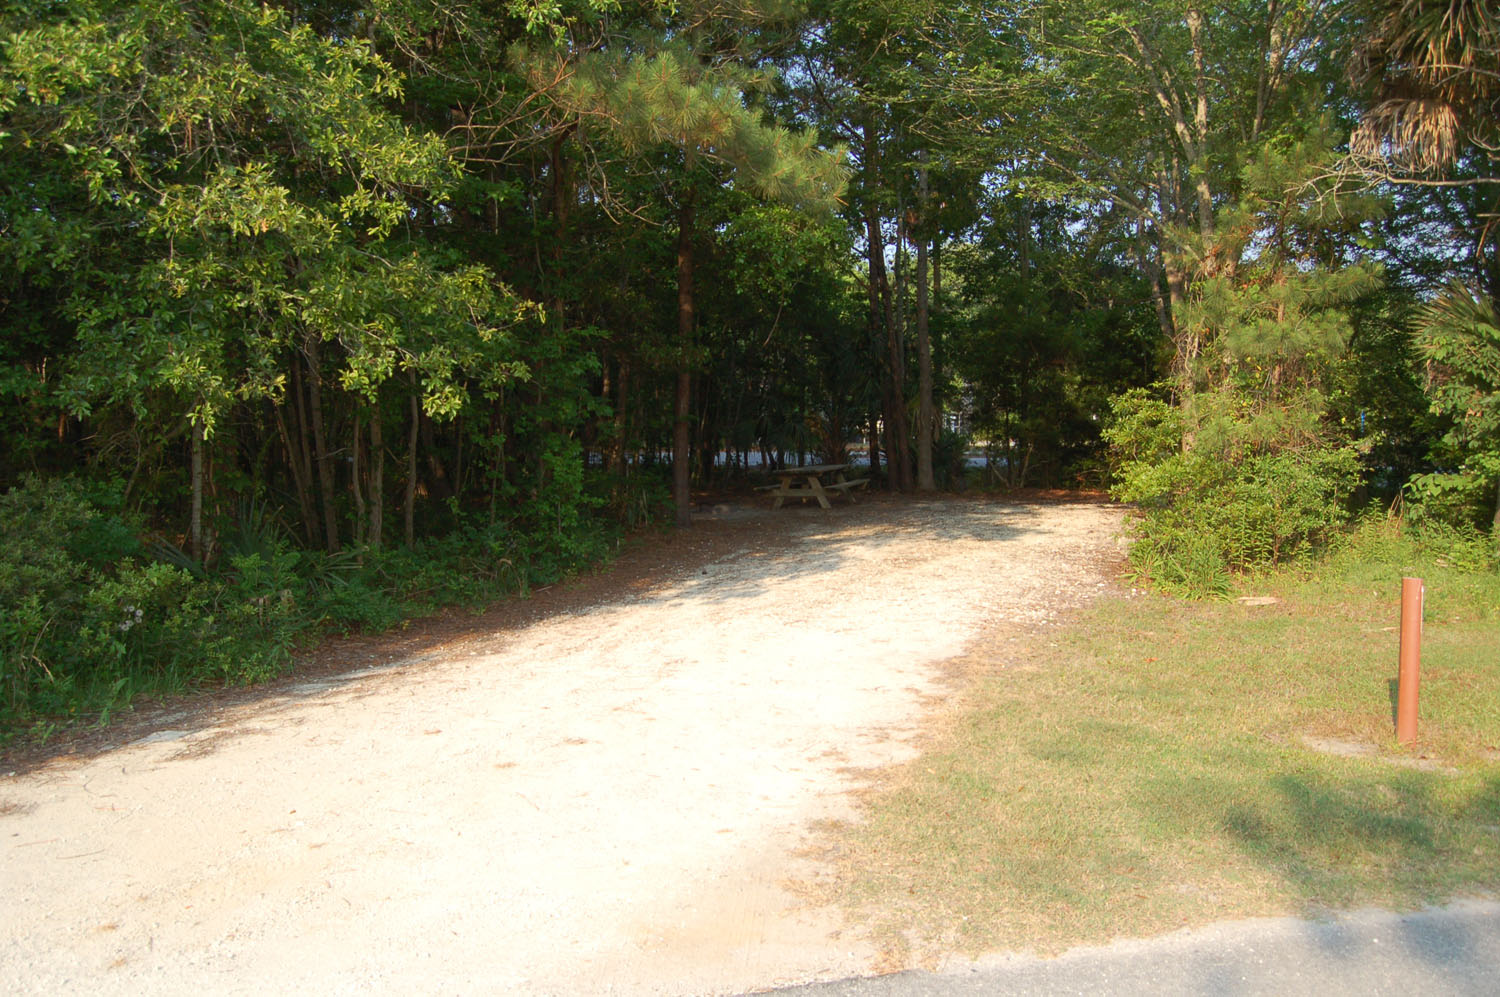 Image of campsite #63 at the Campground at James Island County Park